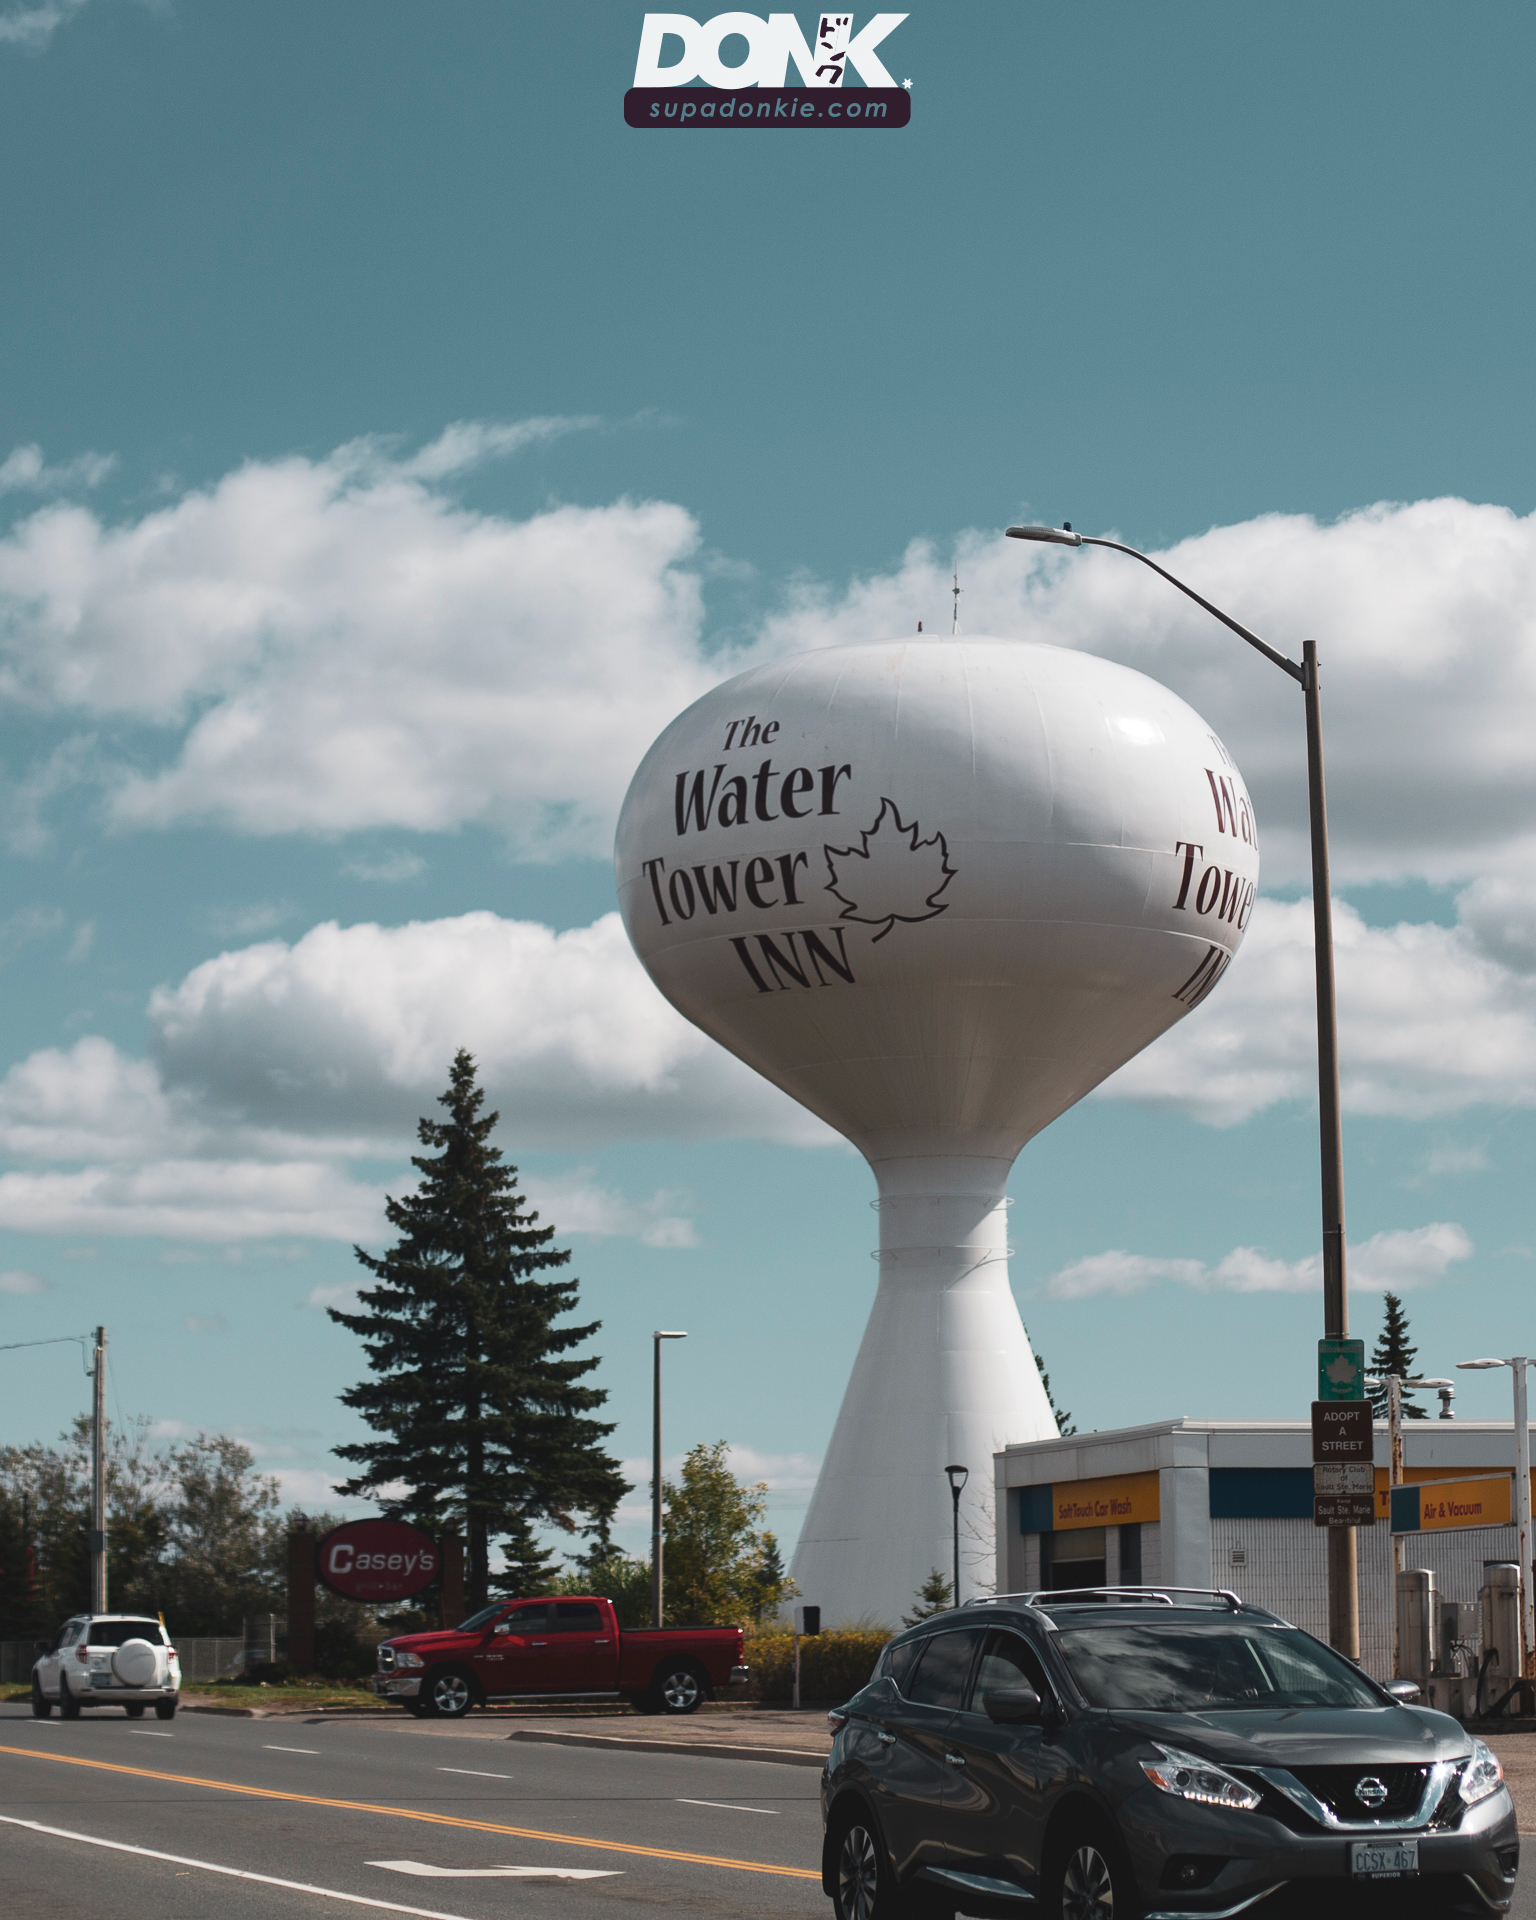 The Water Tower Inn @ Sault Ste. Marie